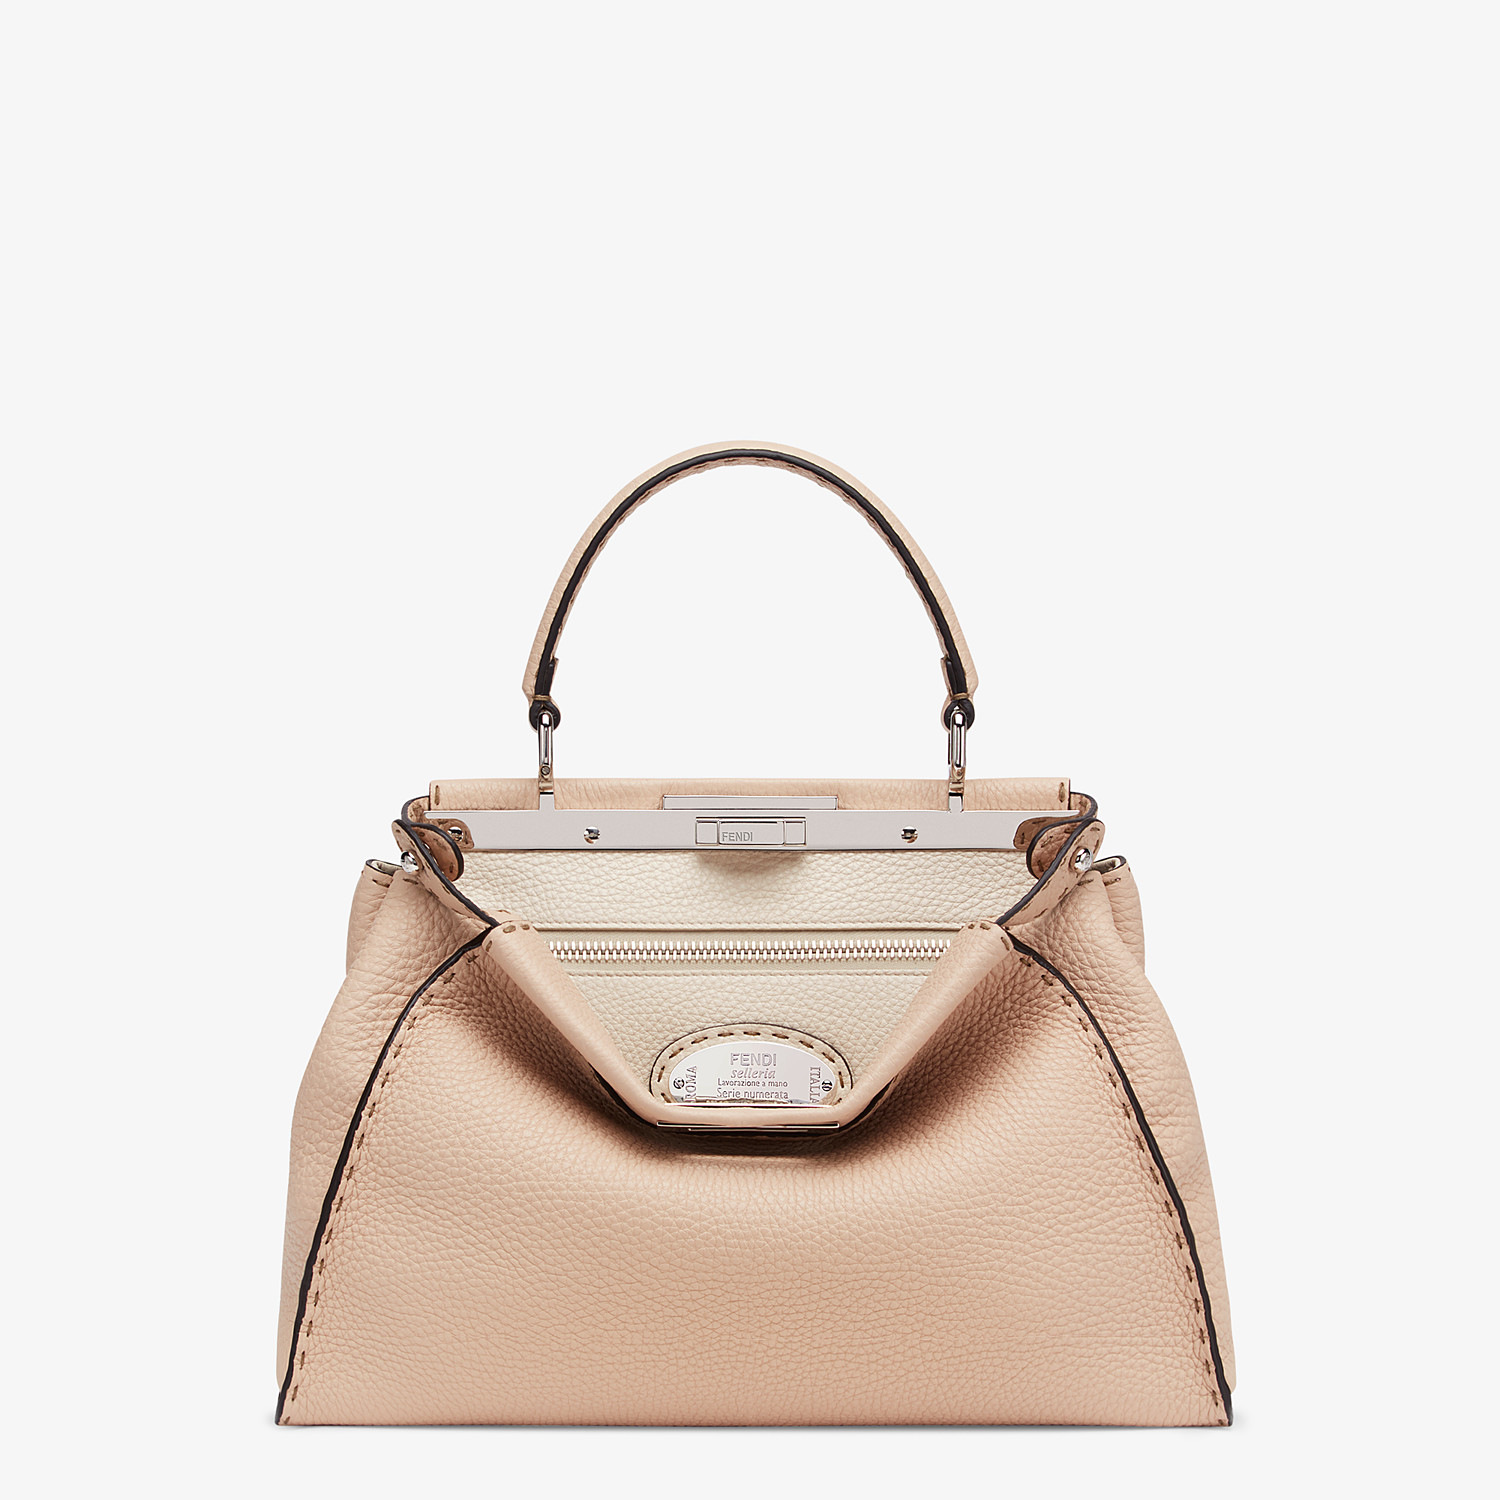 FENDI PEEKABOO ICONIC MEDIUM - Beige leather bag - view 1 detail